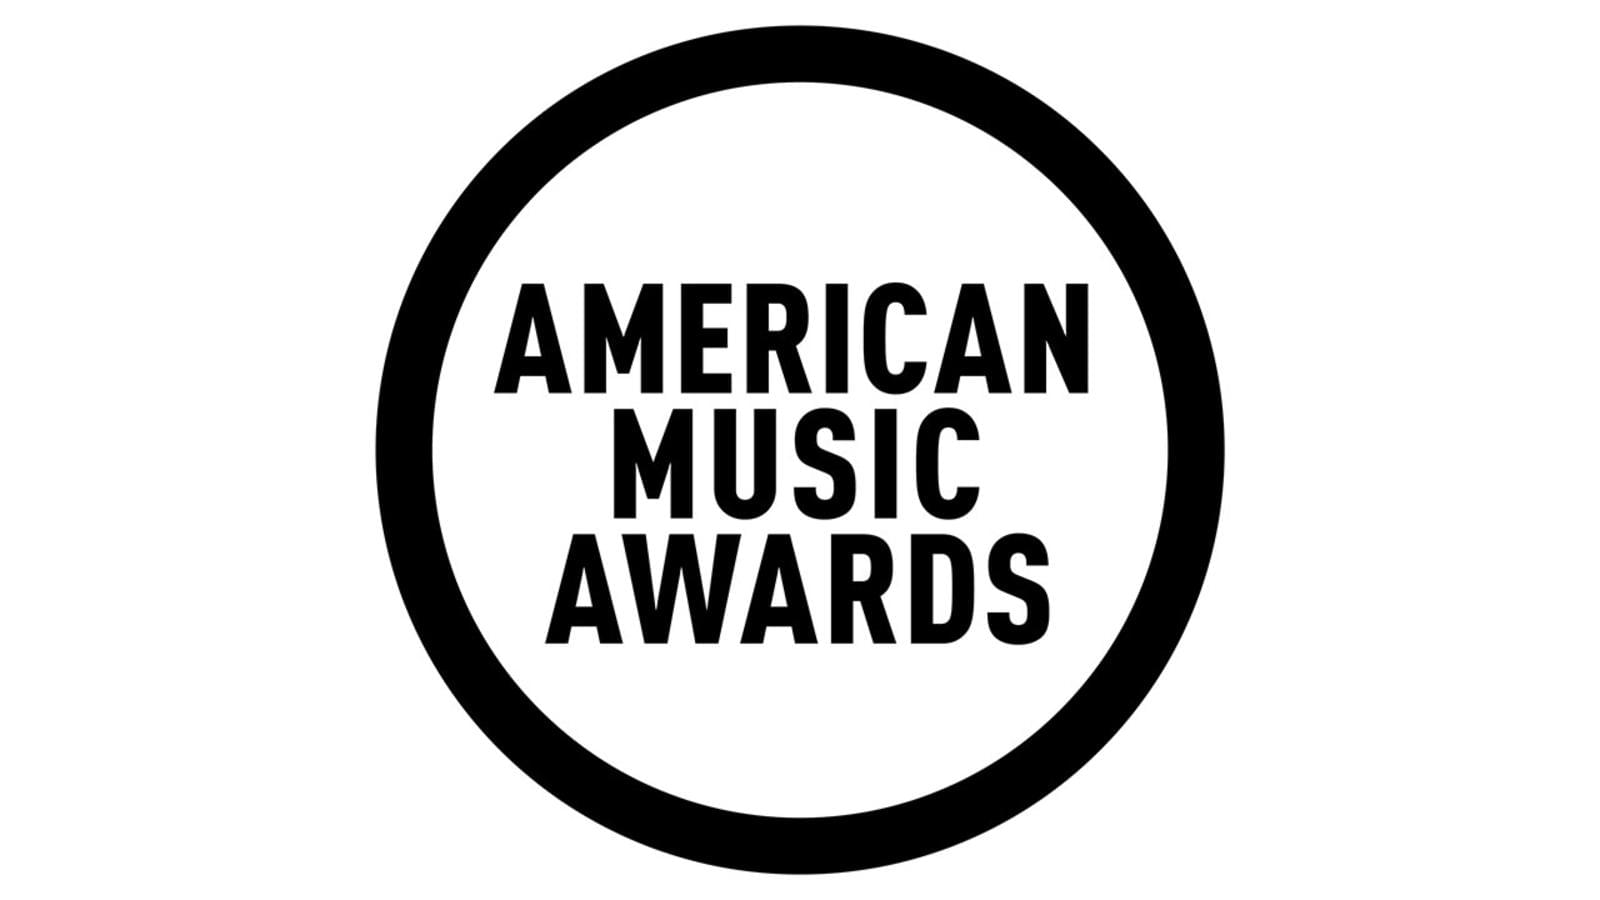 Bad Bunny, Lil Baby, Megan Thee Stallion to Perform at 2020 American Music Awards